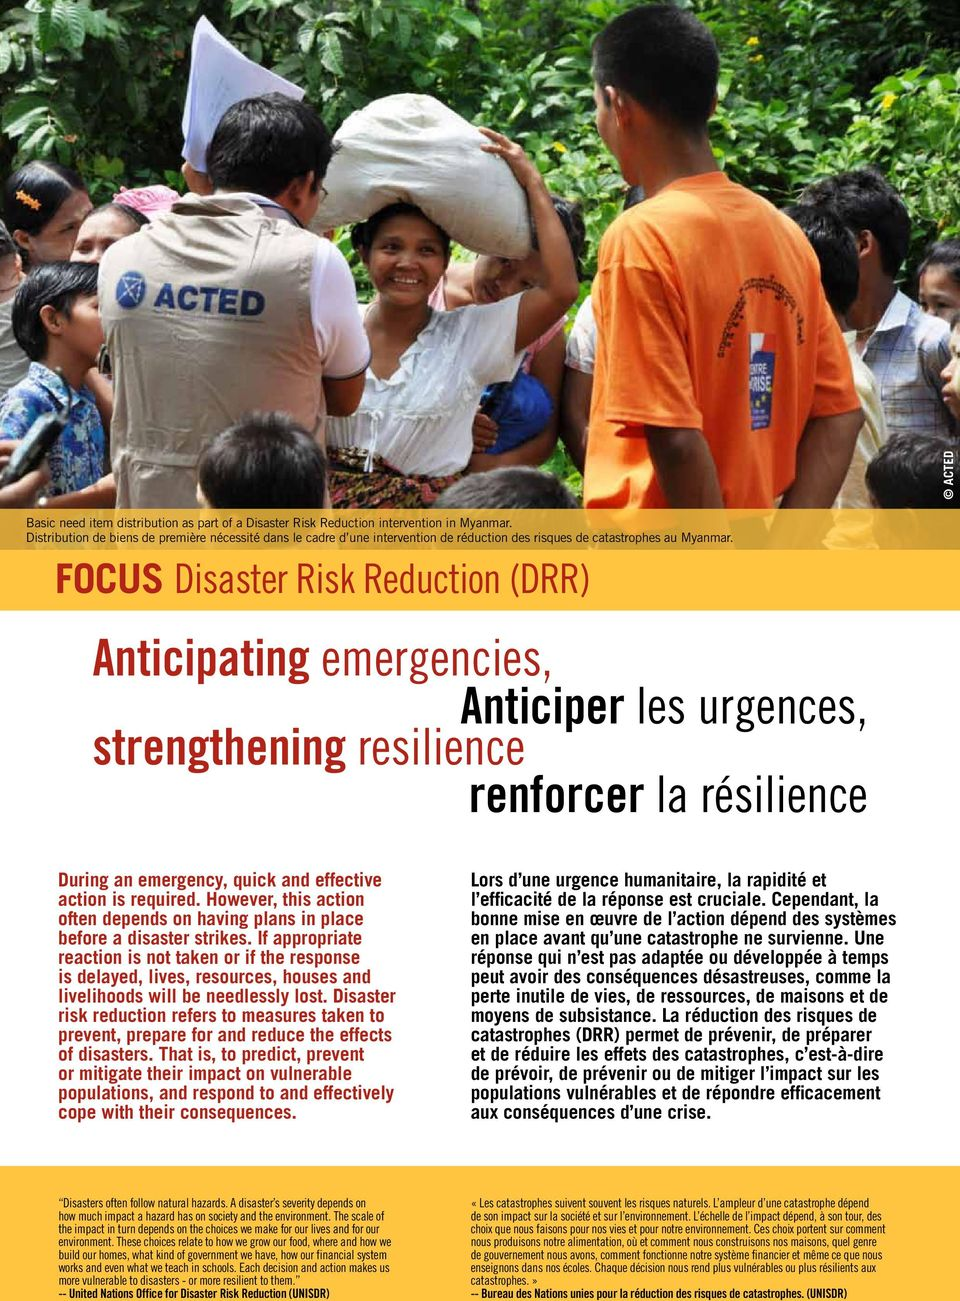 FOCUS Disaster Risk Reduction (DRR) Anticipating emergencies, Anticiper les urgences, strengthening resilience renforcer la résilience During an emergency, quick and effective action is required.